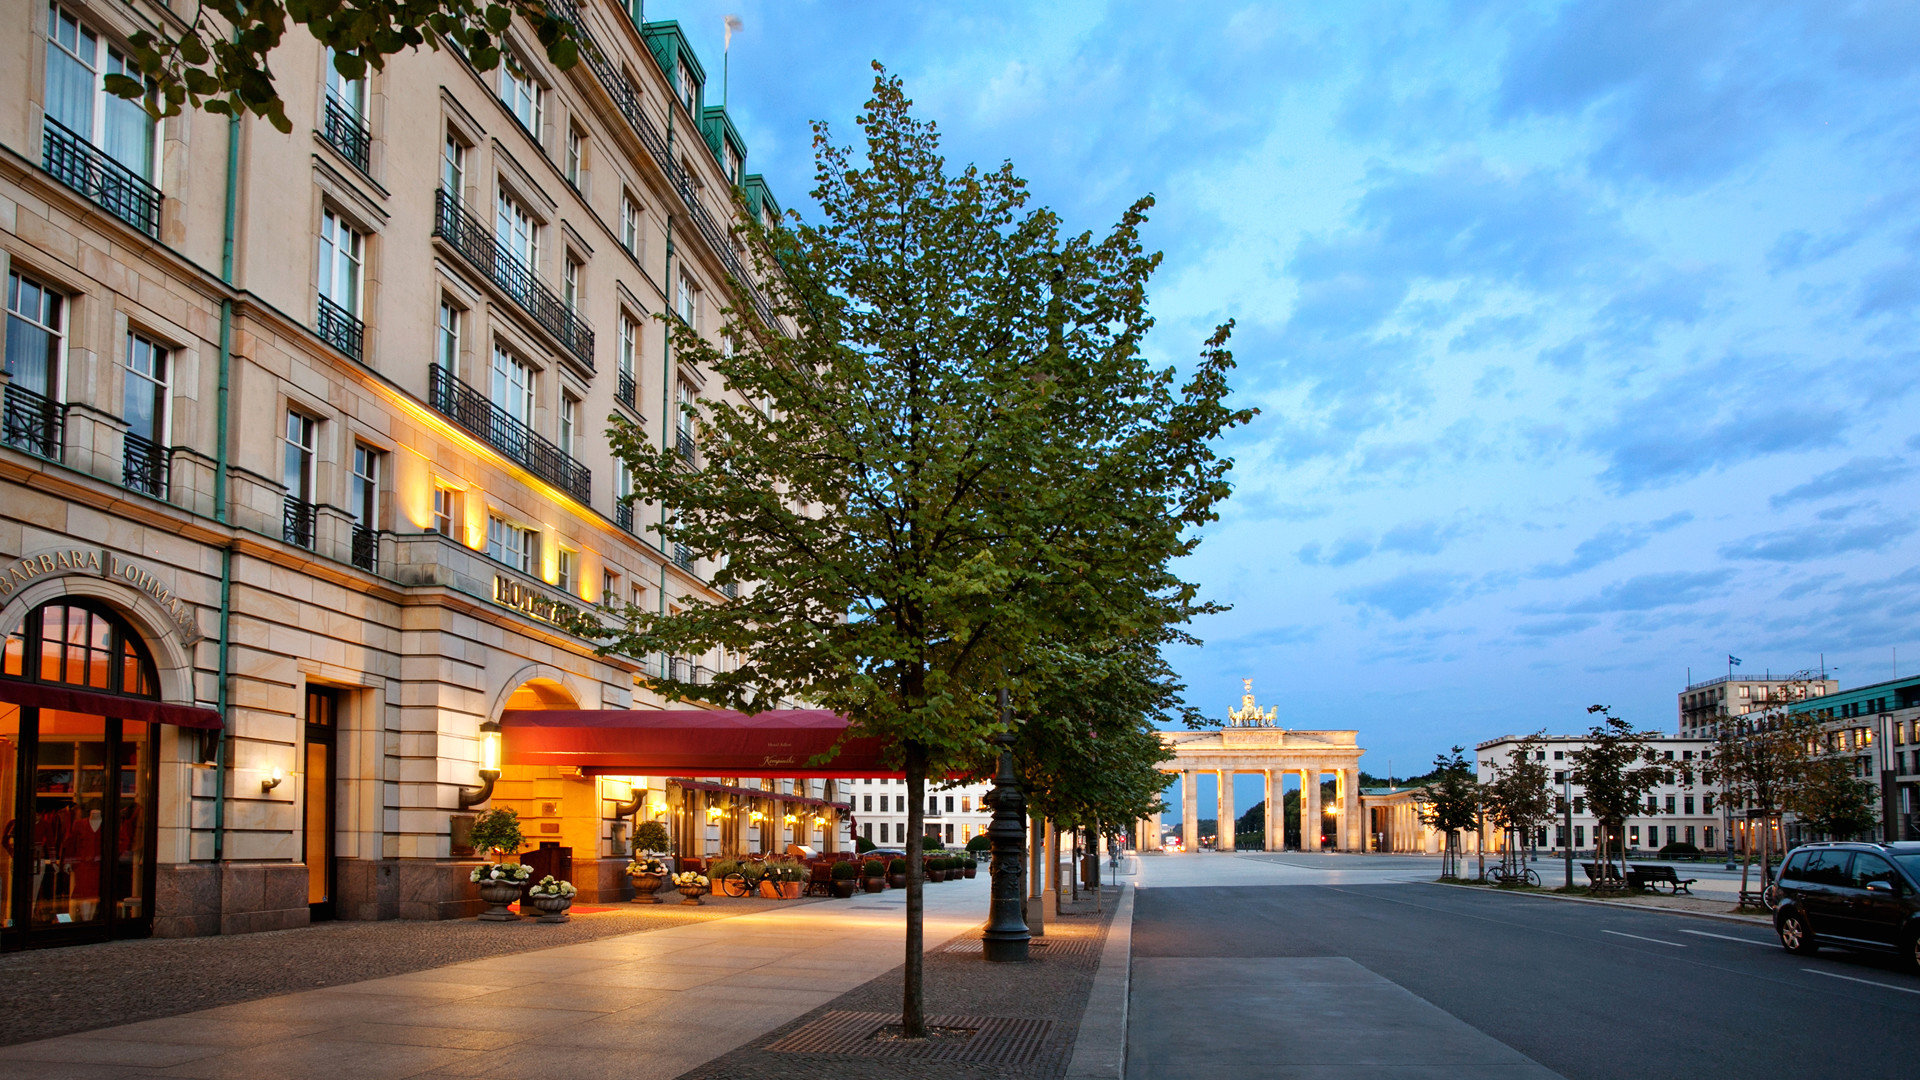 Berlin Boutique Hotels Buildings Exterior Germany Hotels Luxury Travel building sky road scene Town way neighbourhood City street residential area Downtown Architecture cityscape plaza evening infrastructure sidewalk town square